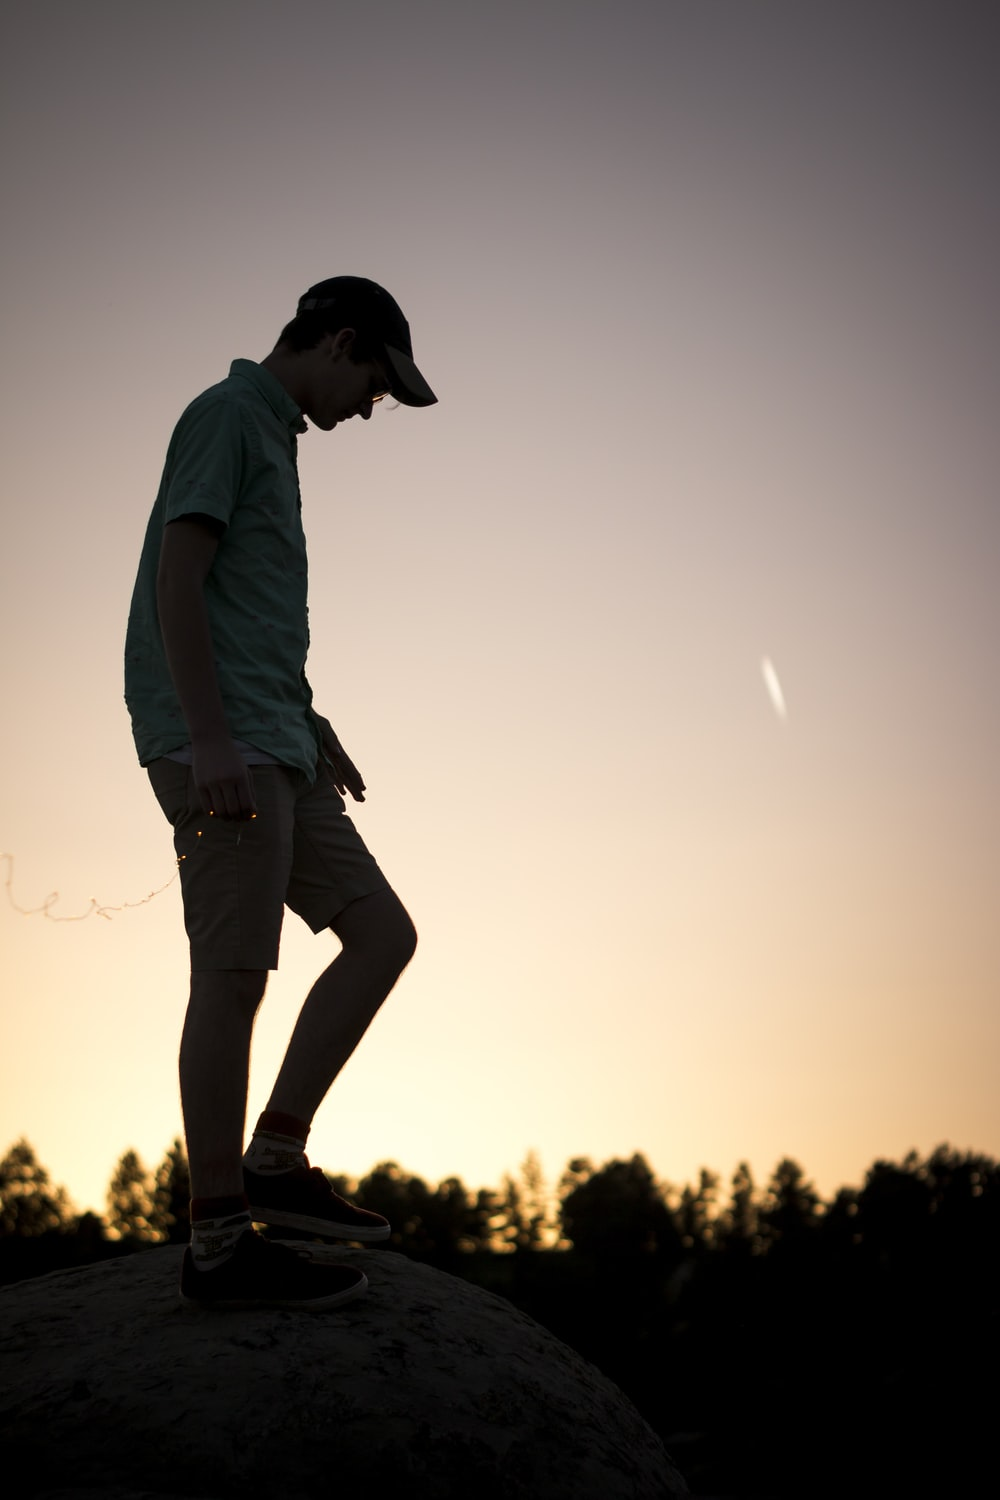 man standing on rock under clear sky